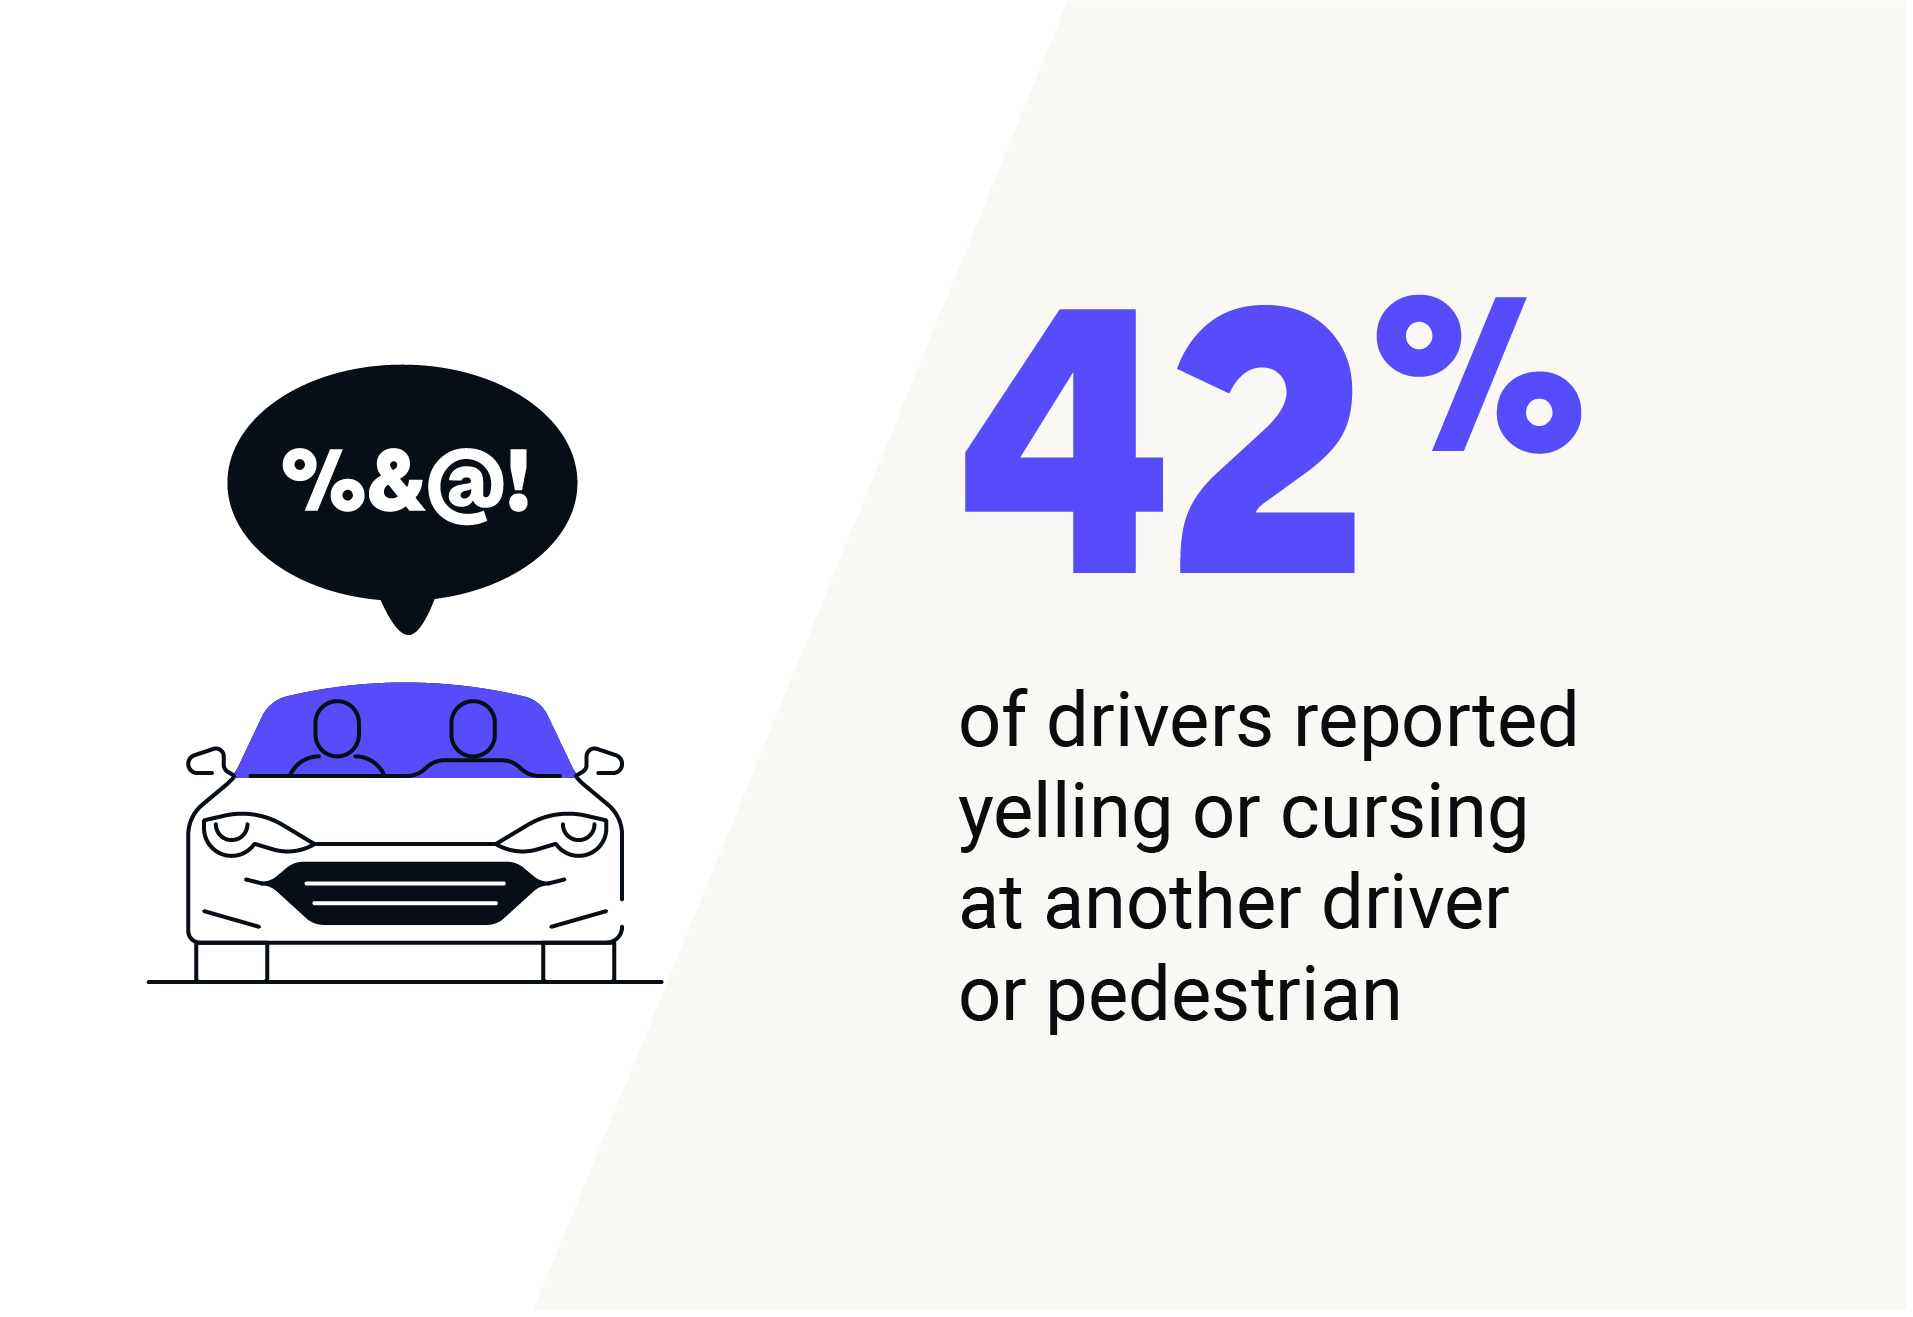 42% of drivers reported yelling or cursing at another driver